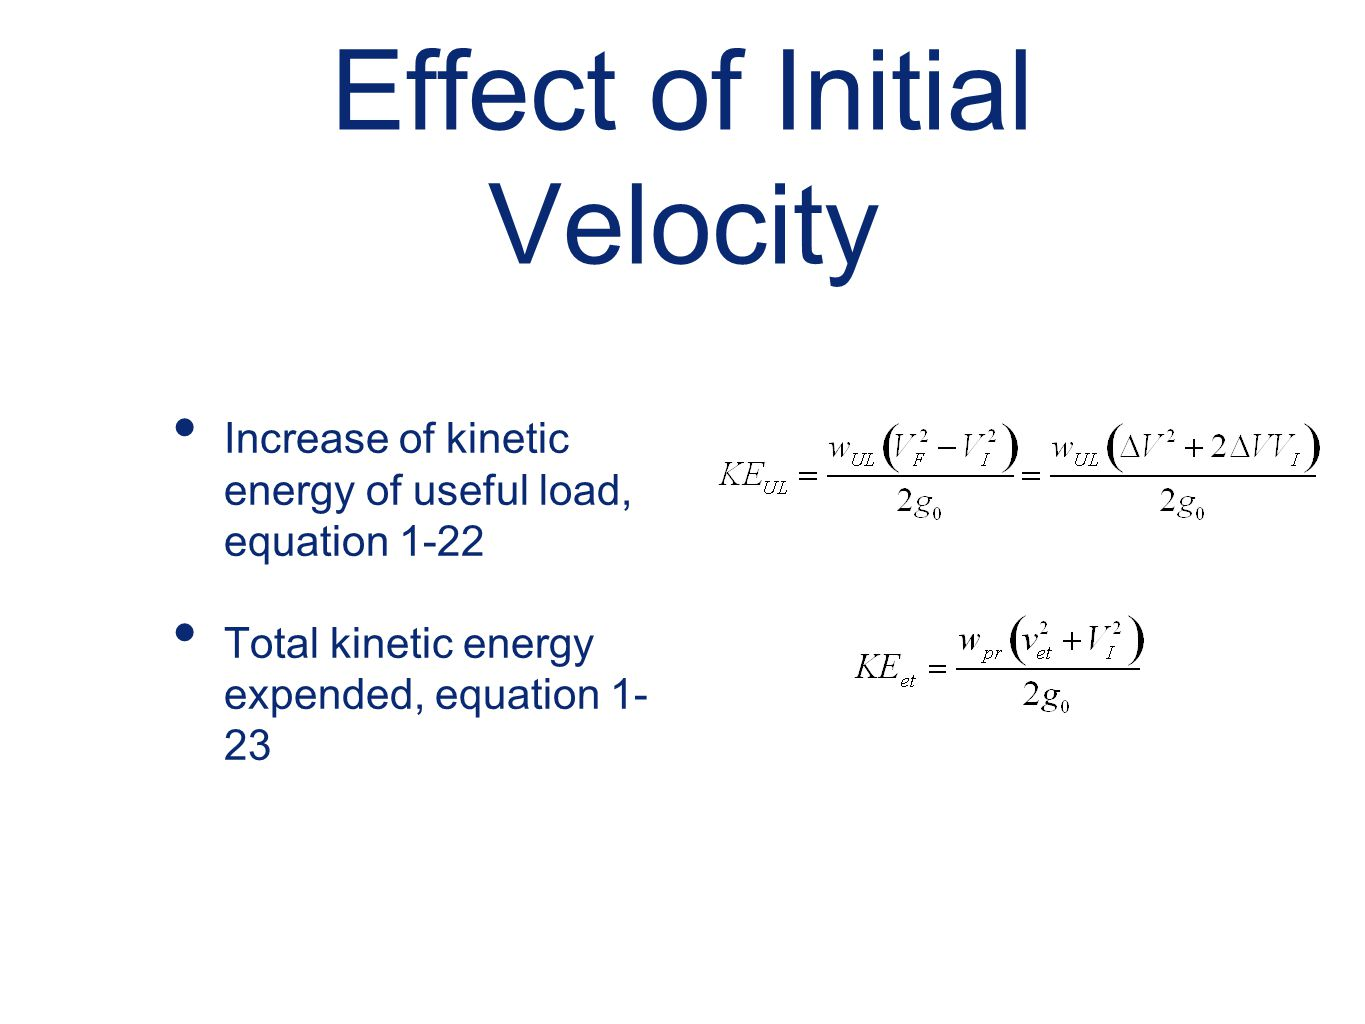 Equation To Find Initial Velocity